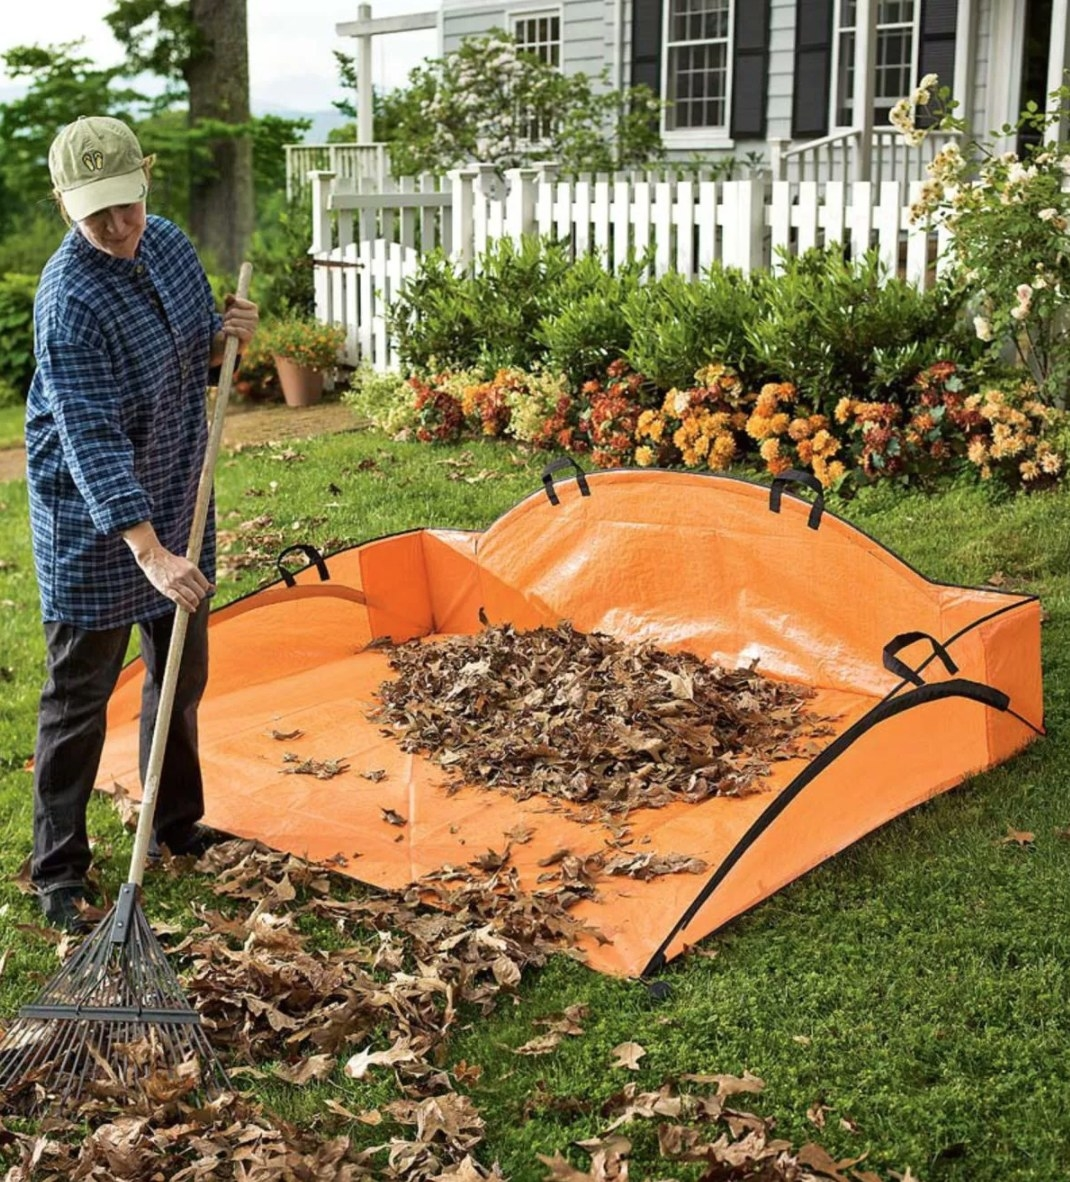 A model using an orange tarp with handles for leaves